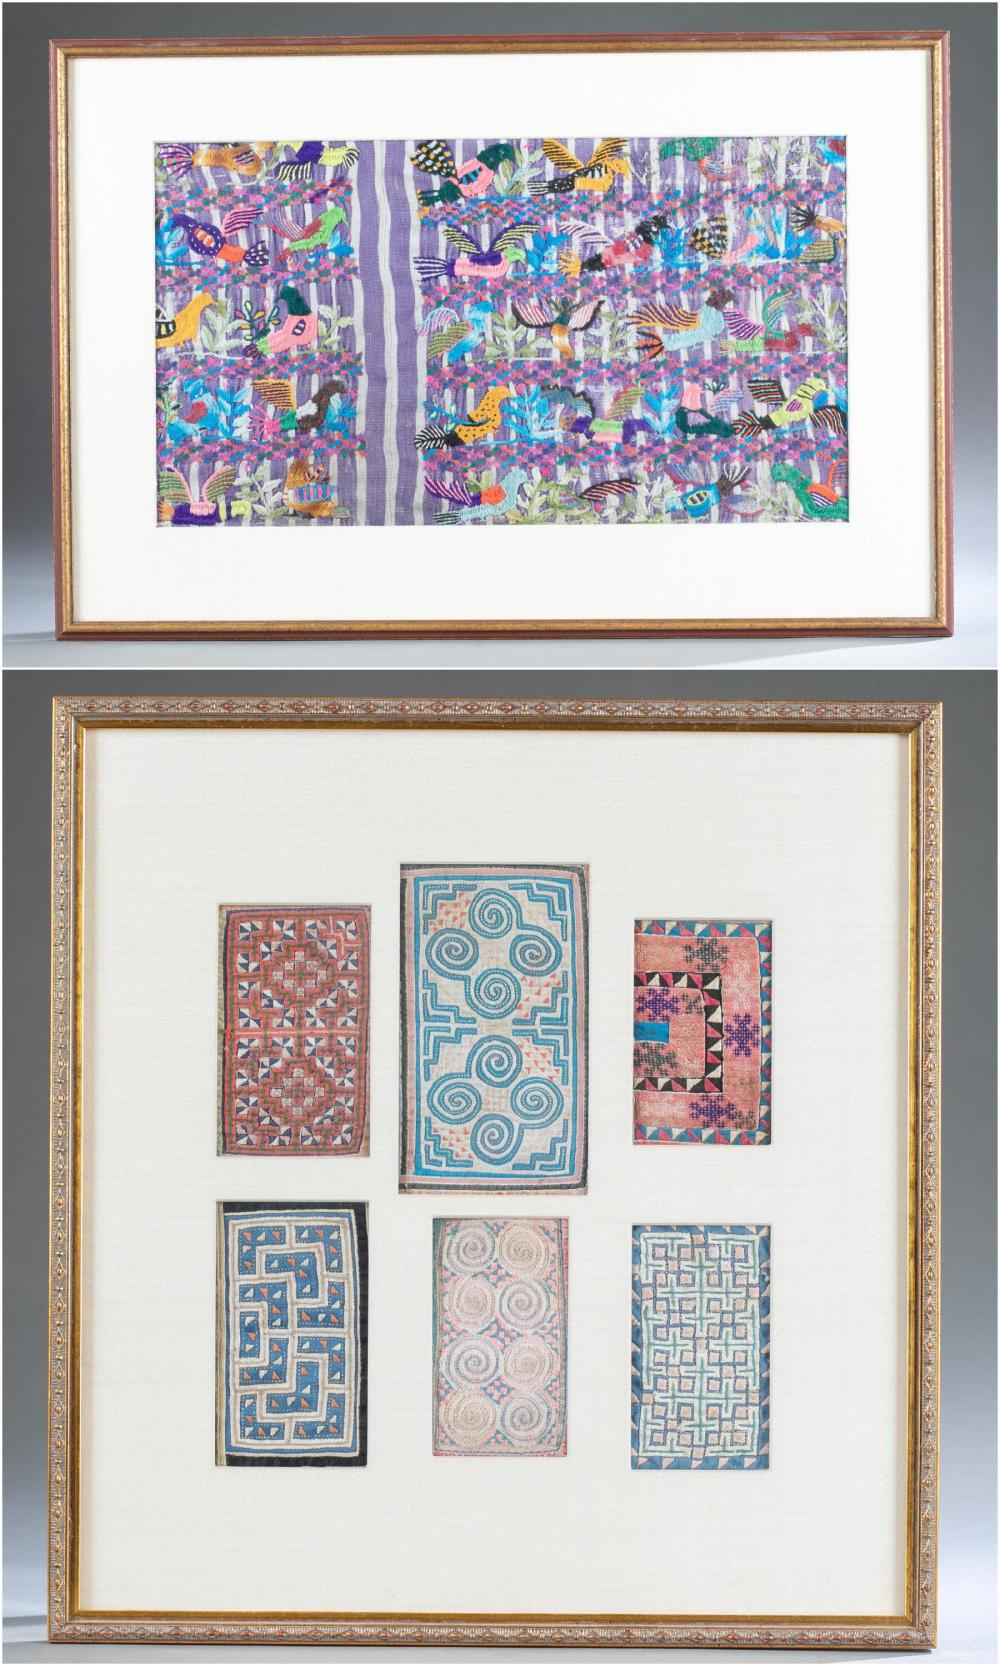 2 FRAMED CENTRAL AMERICAN TEXTILES.